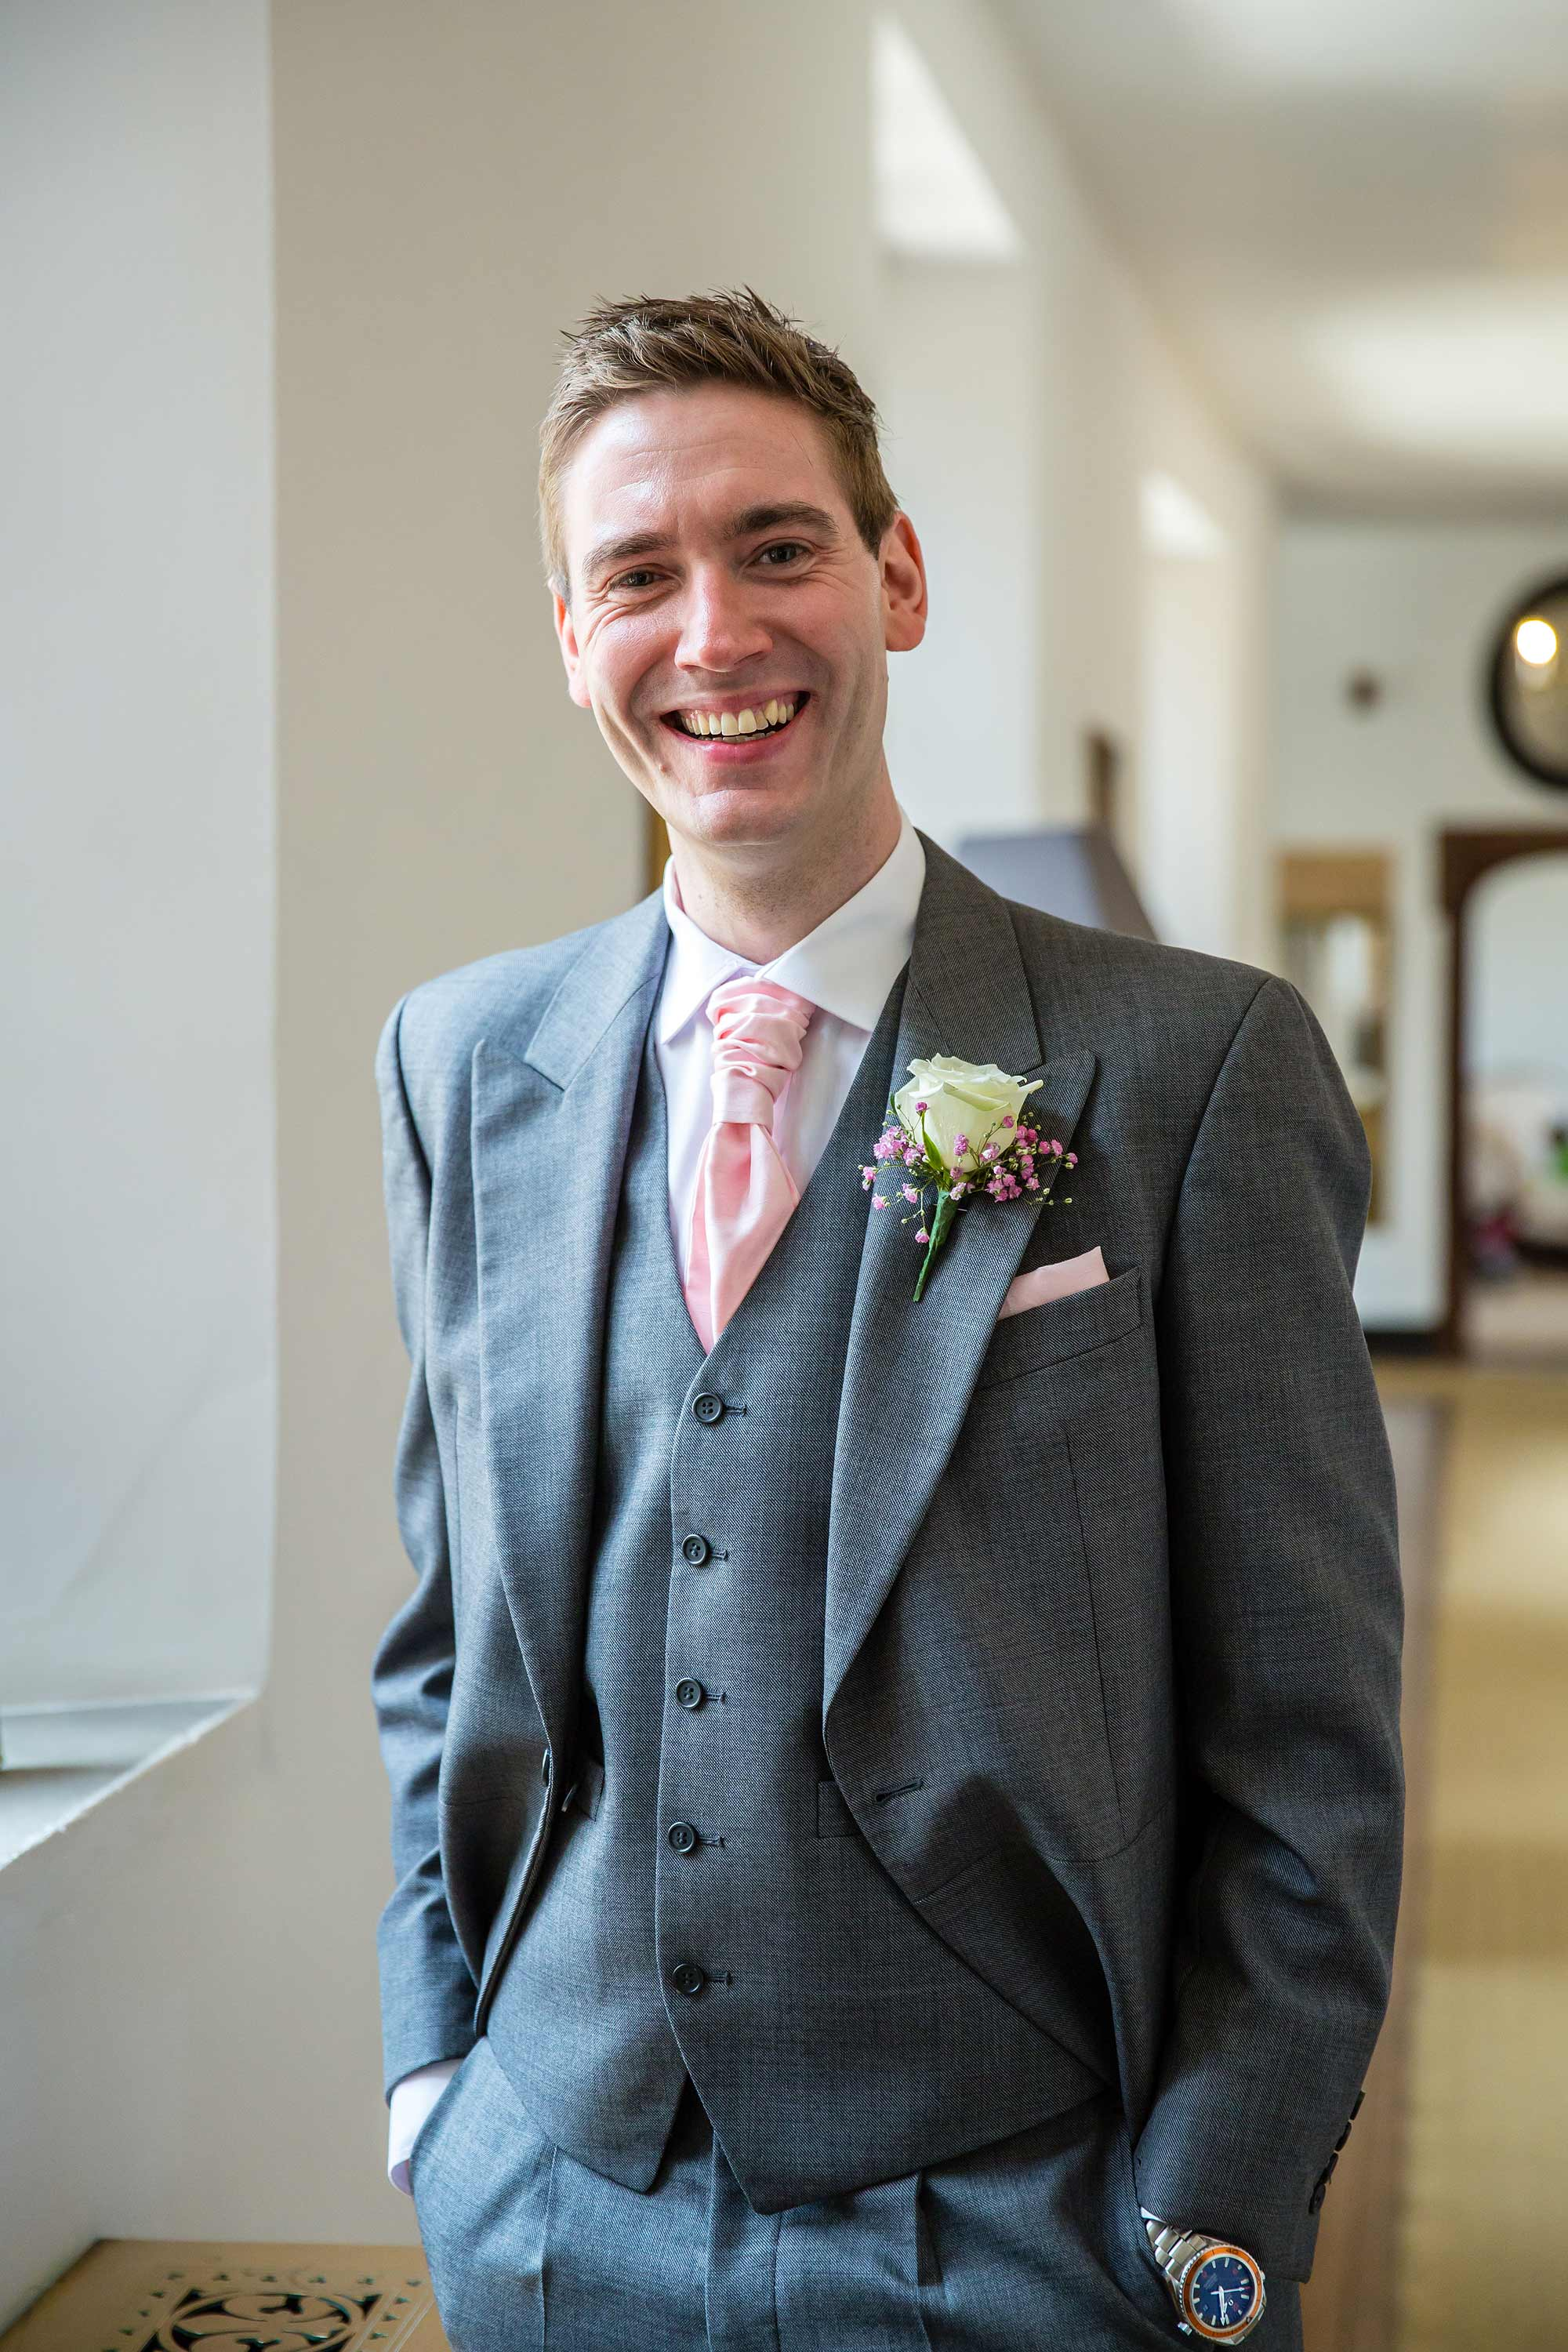 A portrait of Jack the groom at Hengrave Hall that day